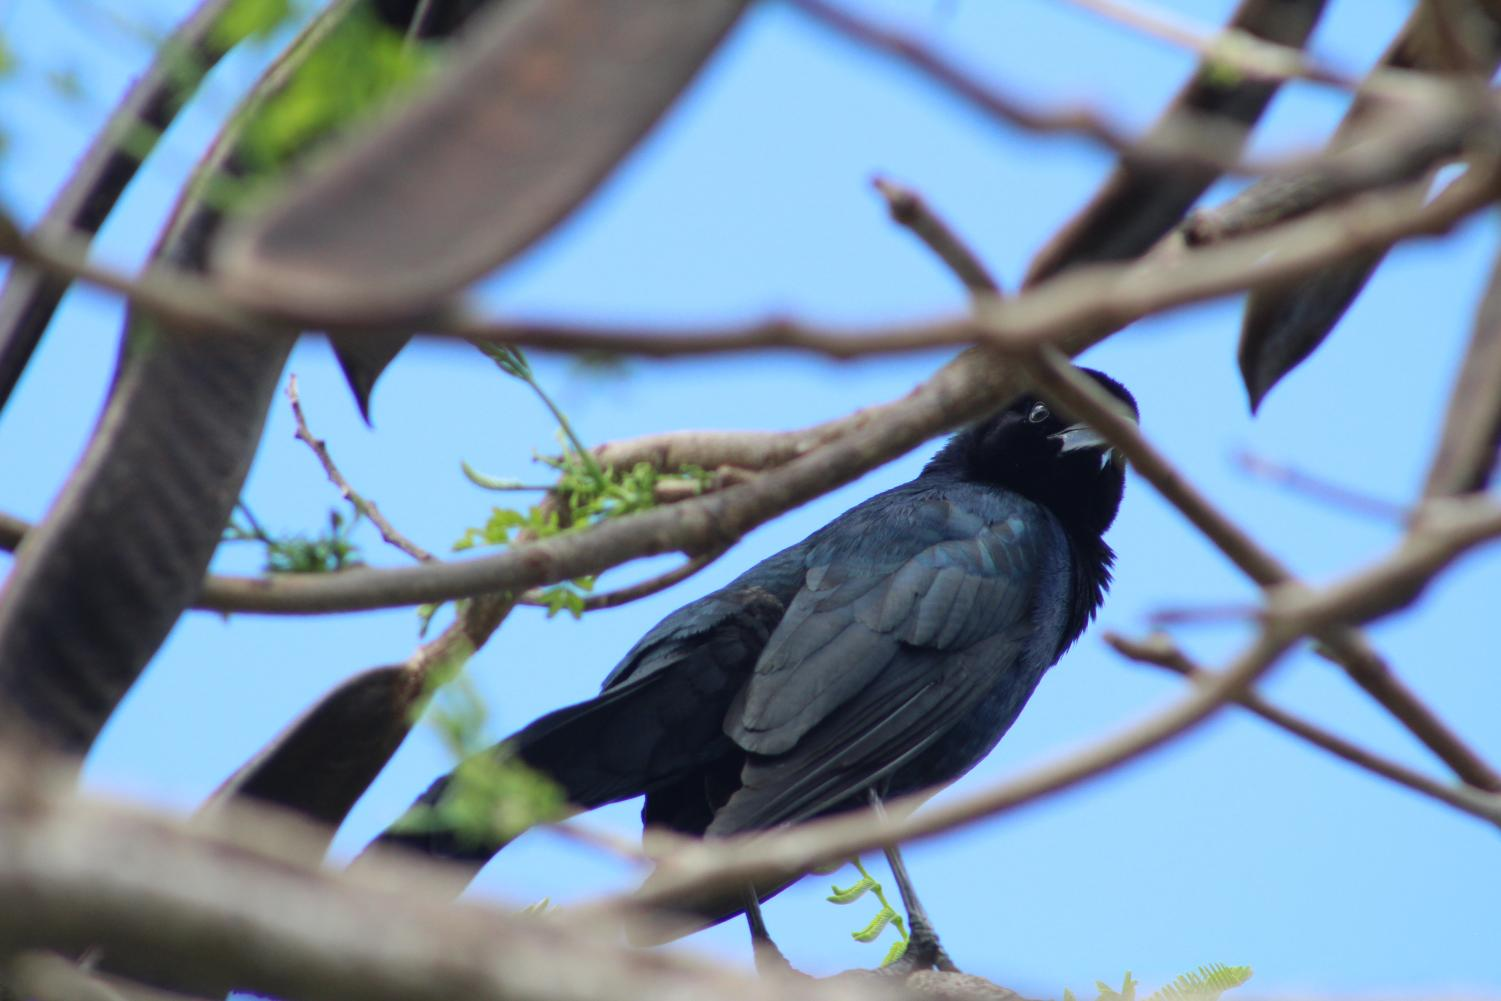 Grackles seen all over Santaluces' campus